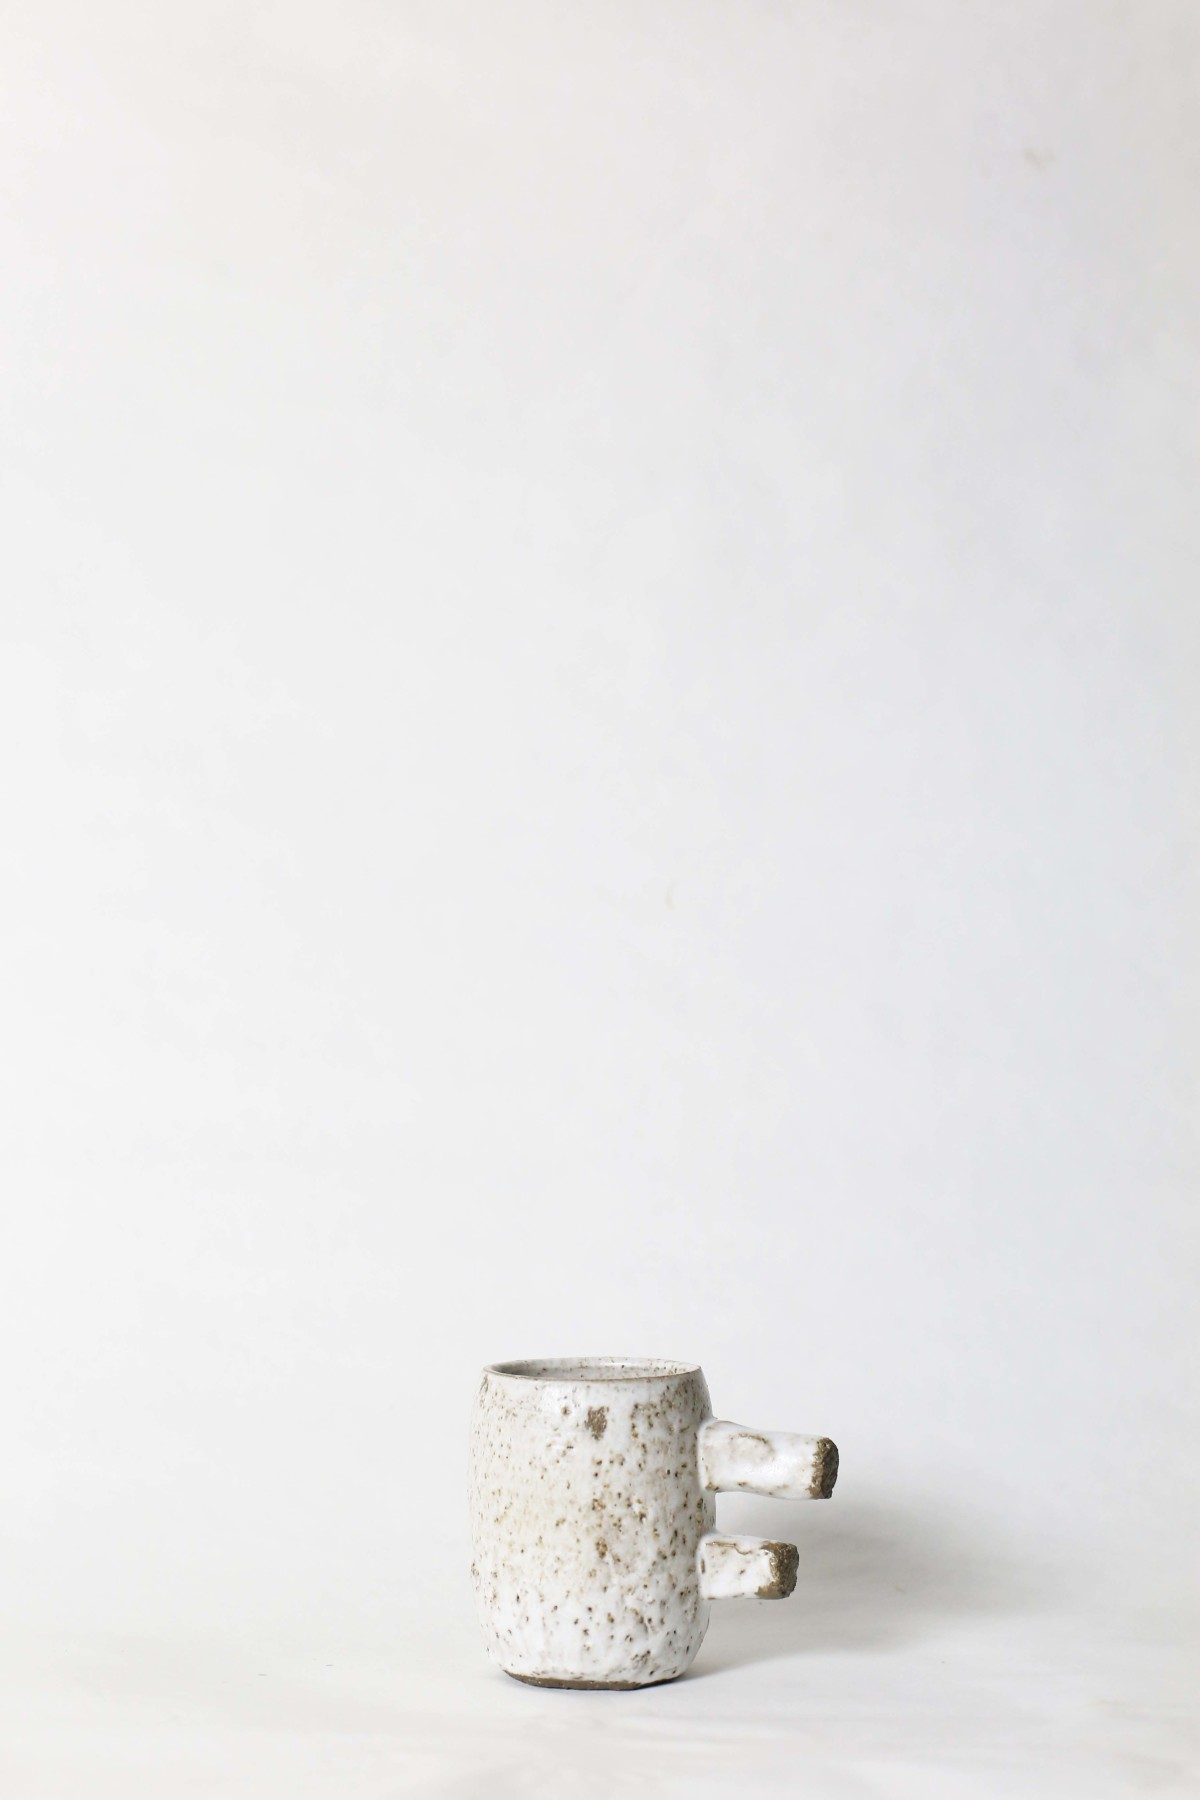 spotty white ceramic cup with two stick handle on a white background